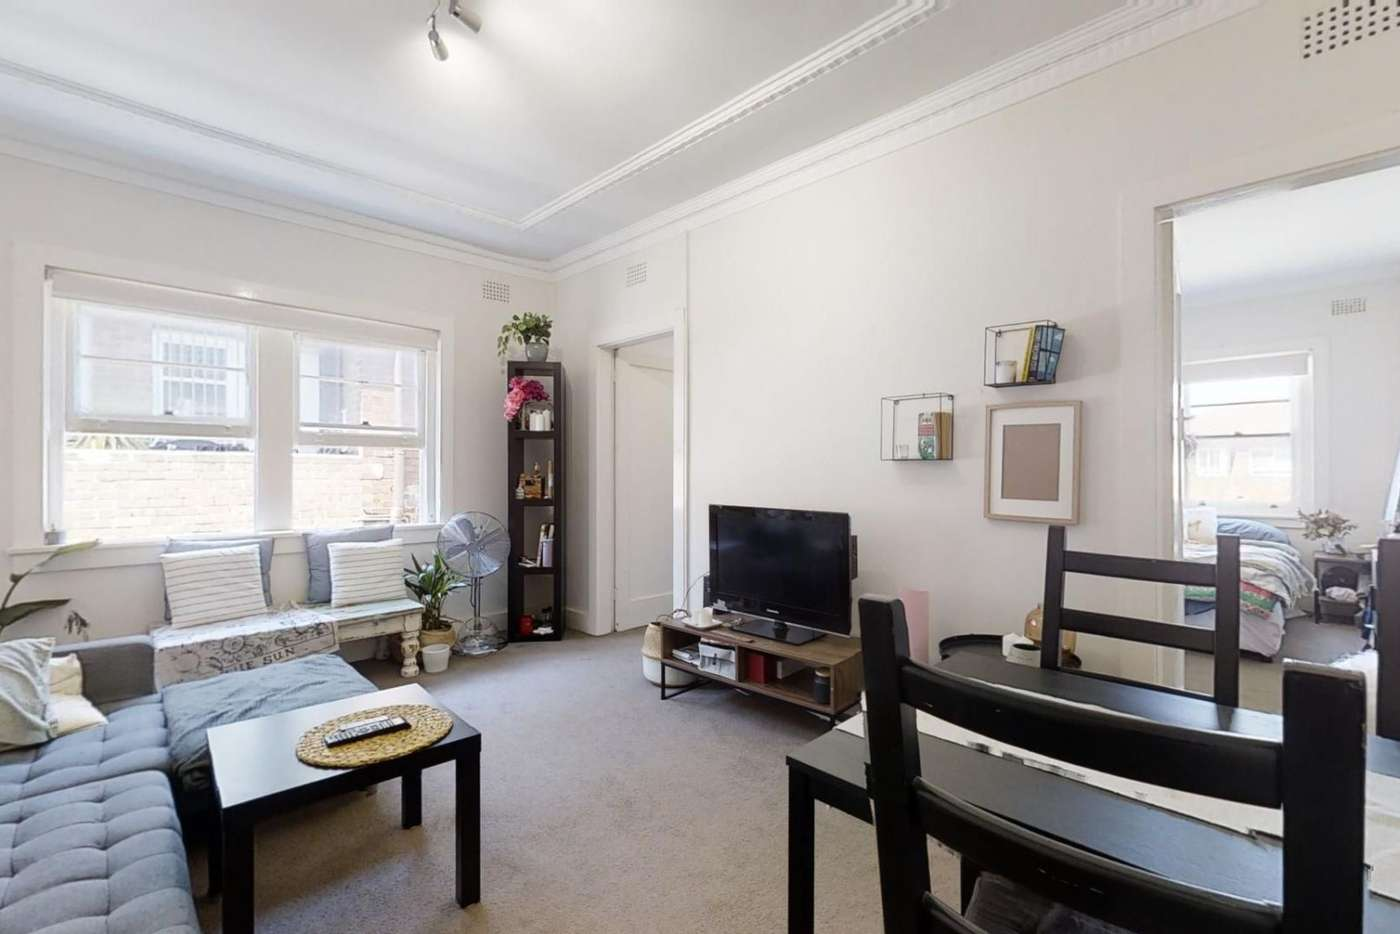 Main view of Homely apartment listing, 10/38 Ramsgate Avenue, Bondi Beach NSW 2026